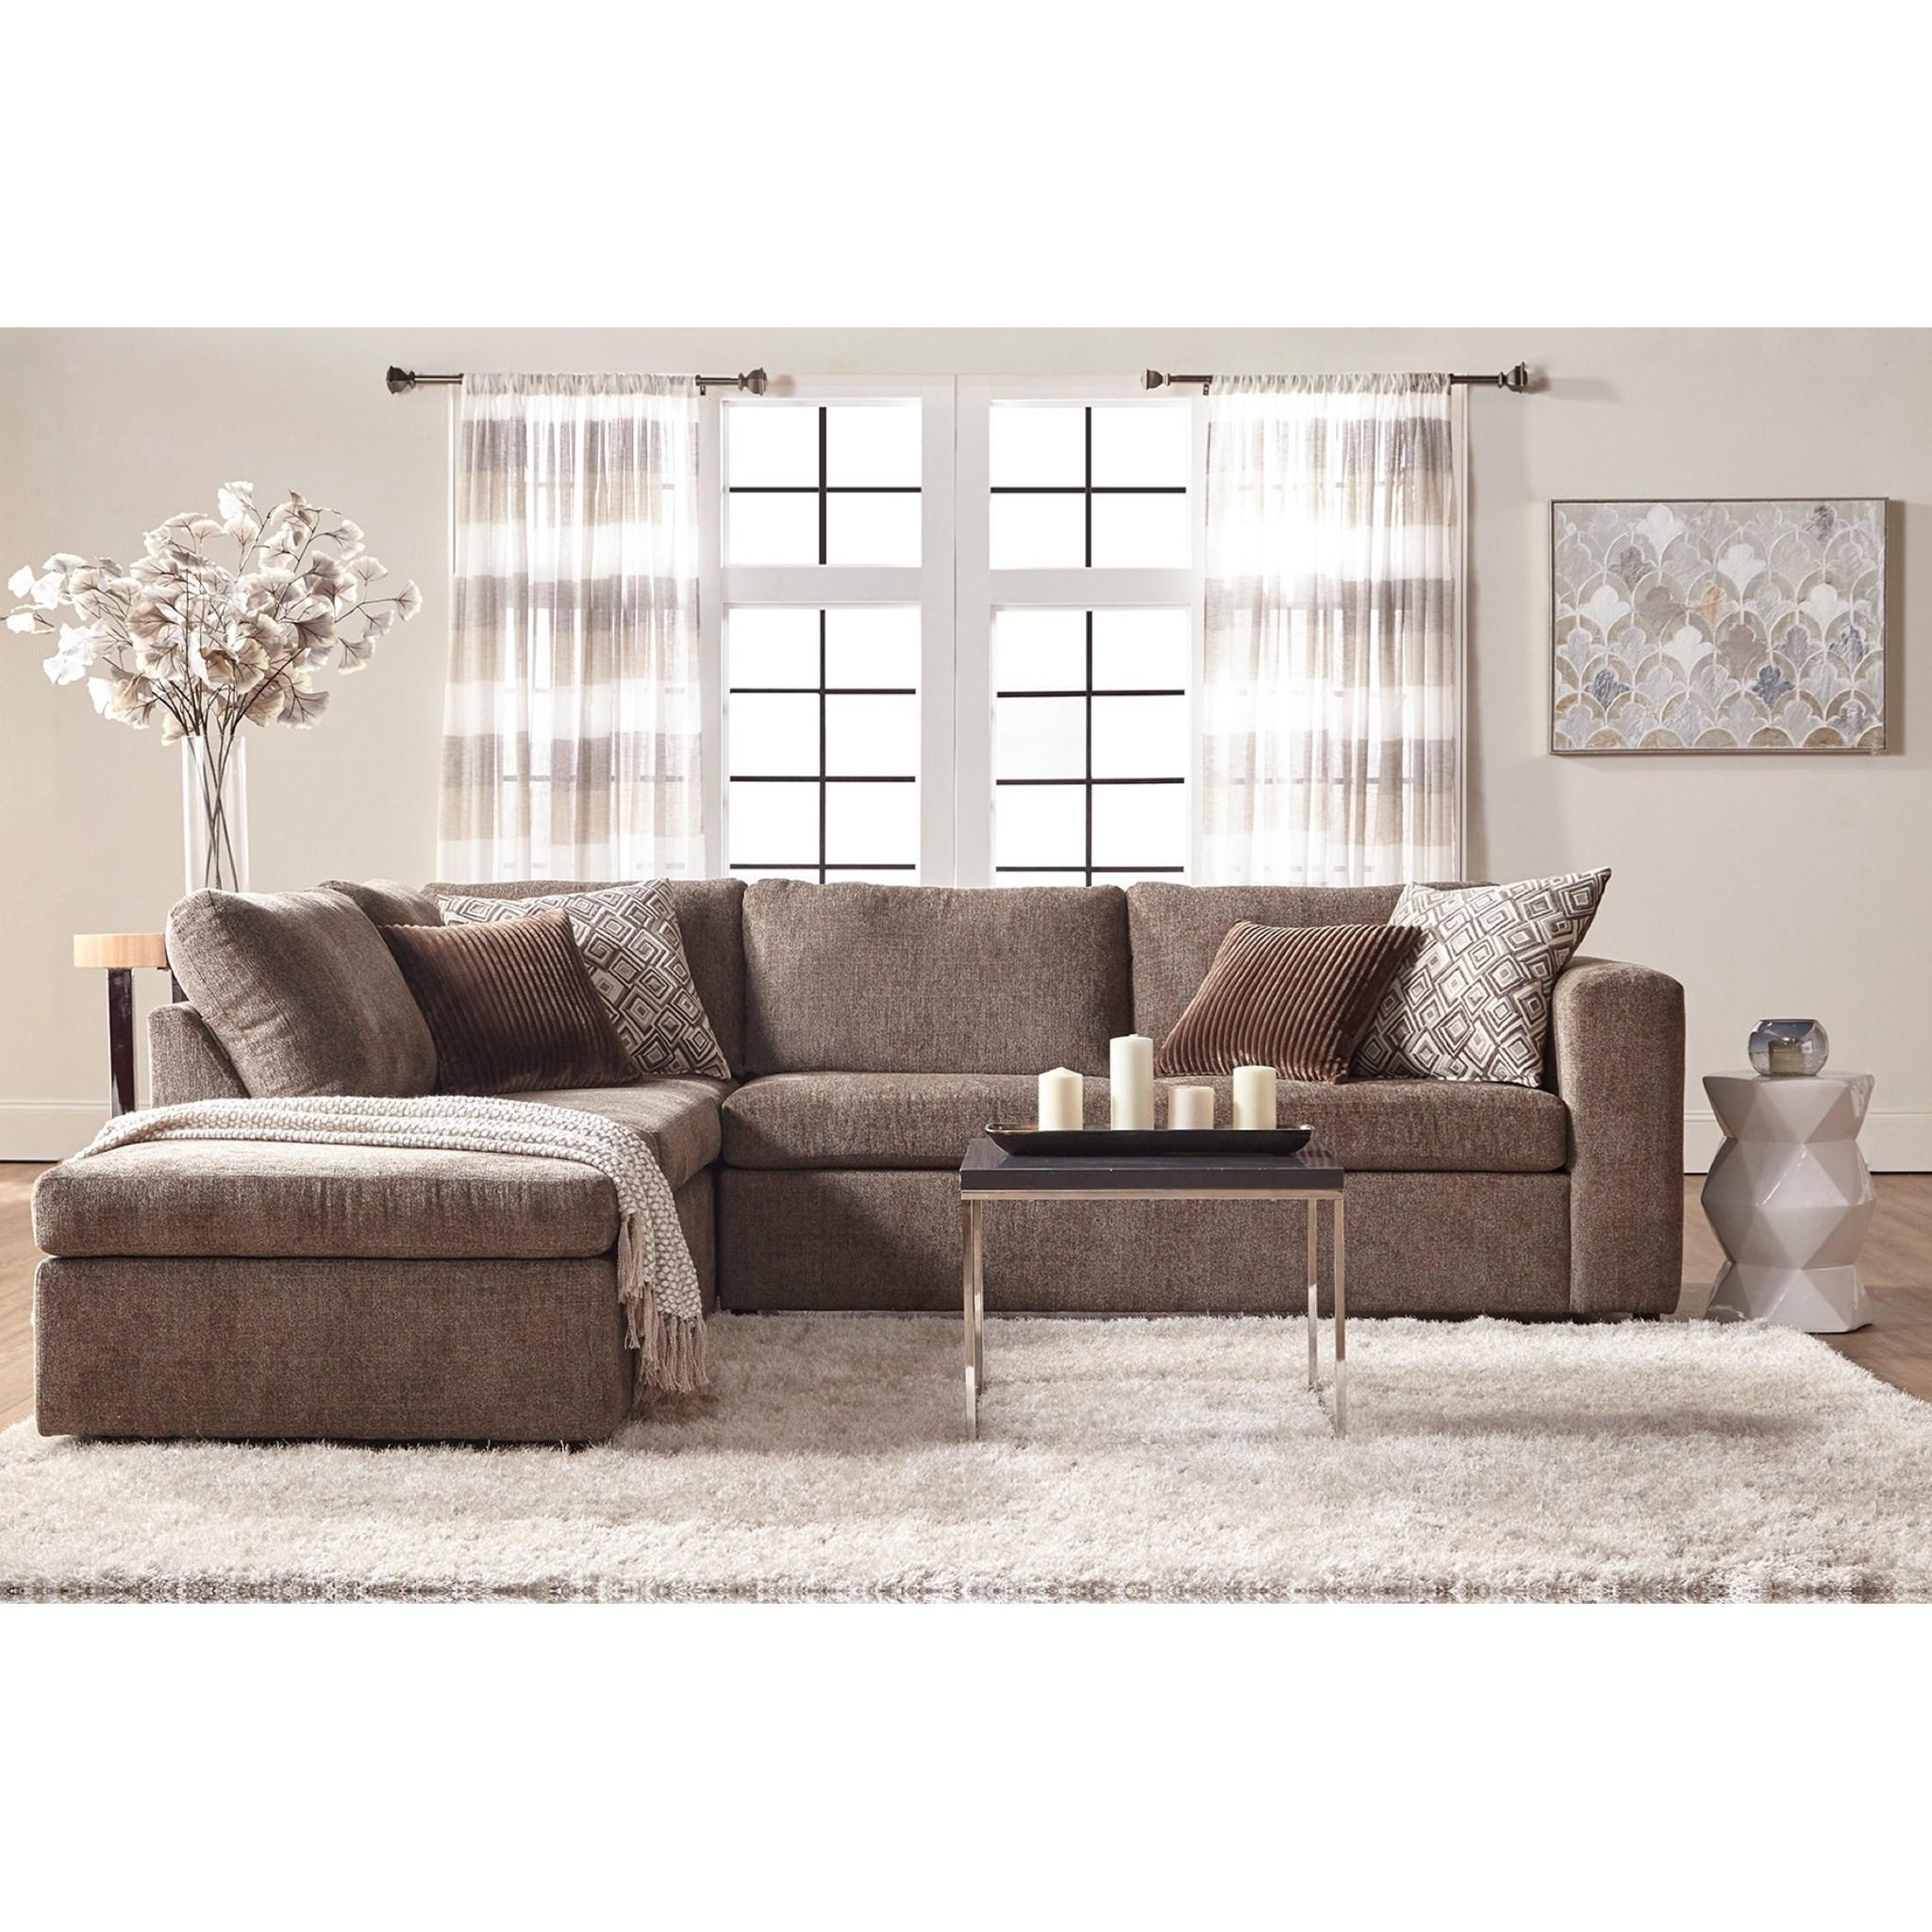 Serta Upholstery Angora Casual Contemporary Sectional Sofa With Regarding Serta Sectional (Image 16 of 20)